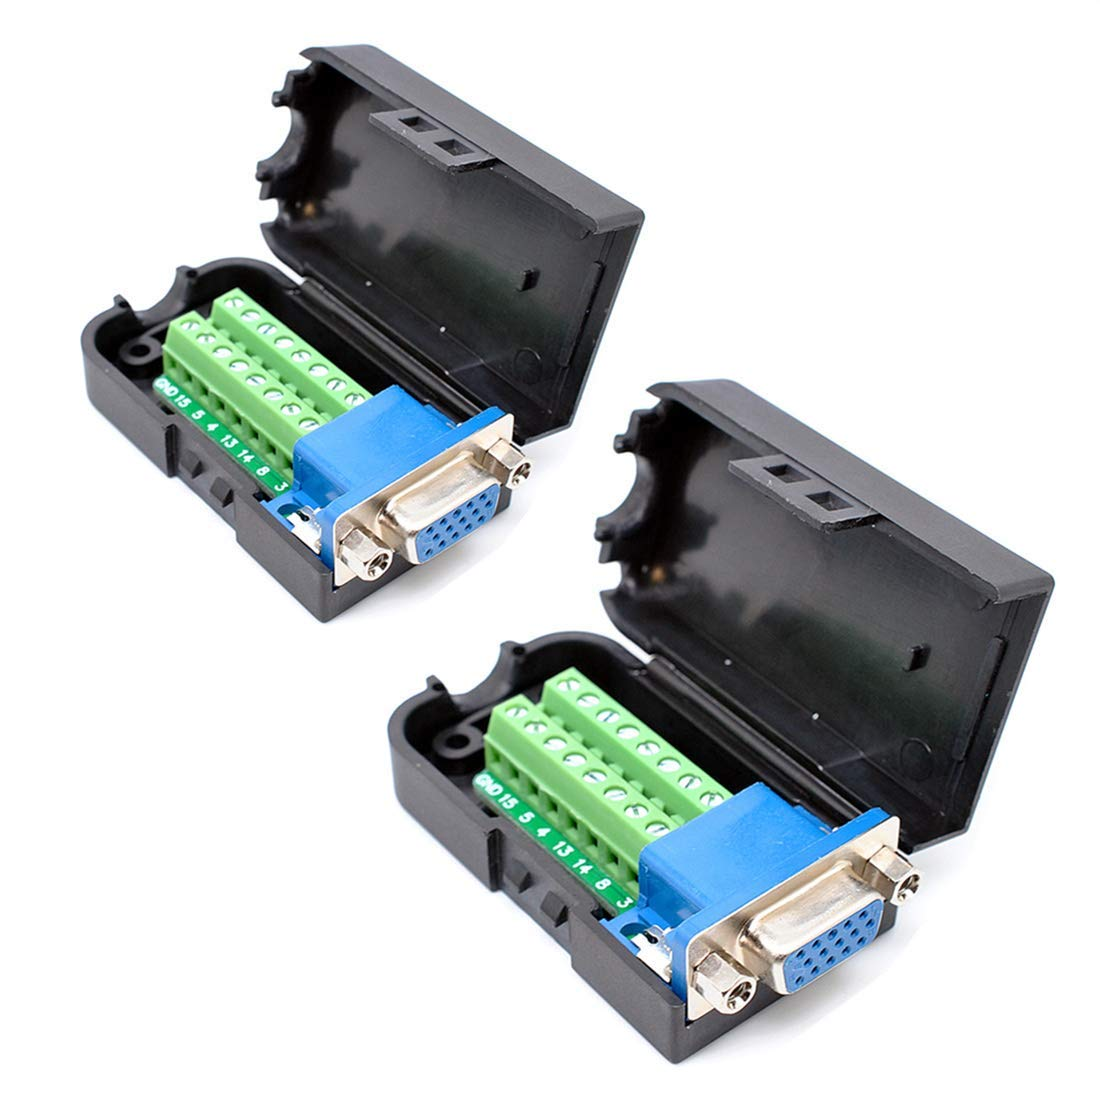 Oiyagai 2pcs DB15 3+9 D-SUB VGA Female 3Row 15Pin Connector Adaptor with NUT Terminal Breakout Board Free Welding